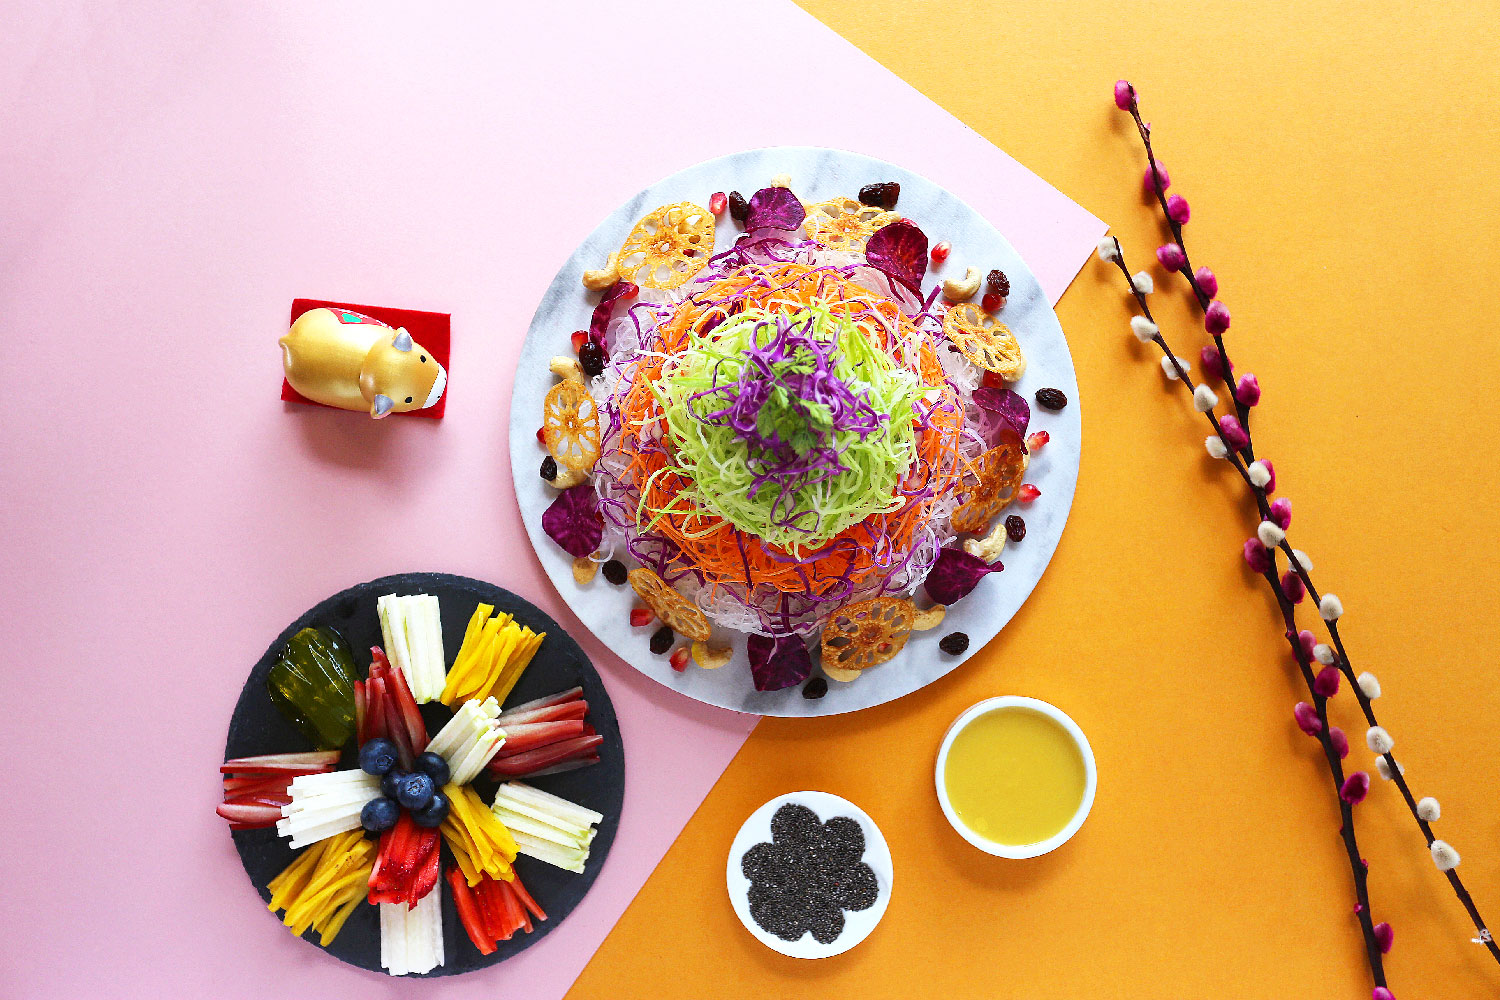 Blossoms-Fresh-Fruits-Yu-Sheng-with-Chia-Seeds-&-Pineapple-Sauce